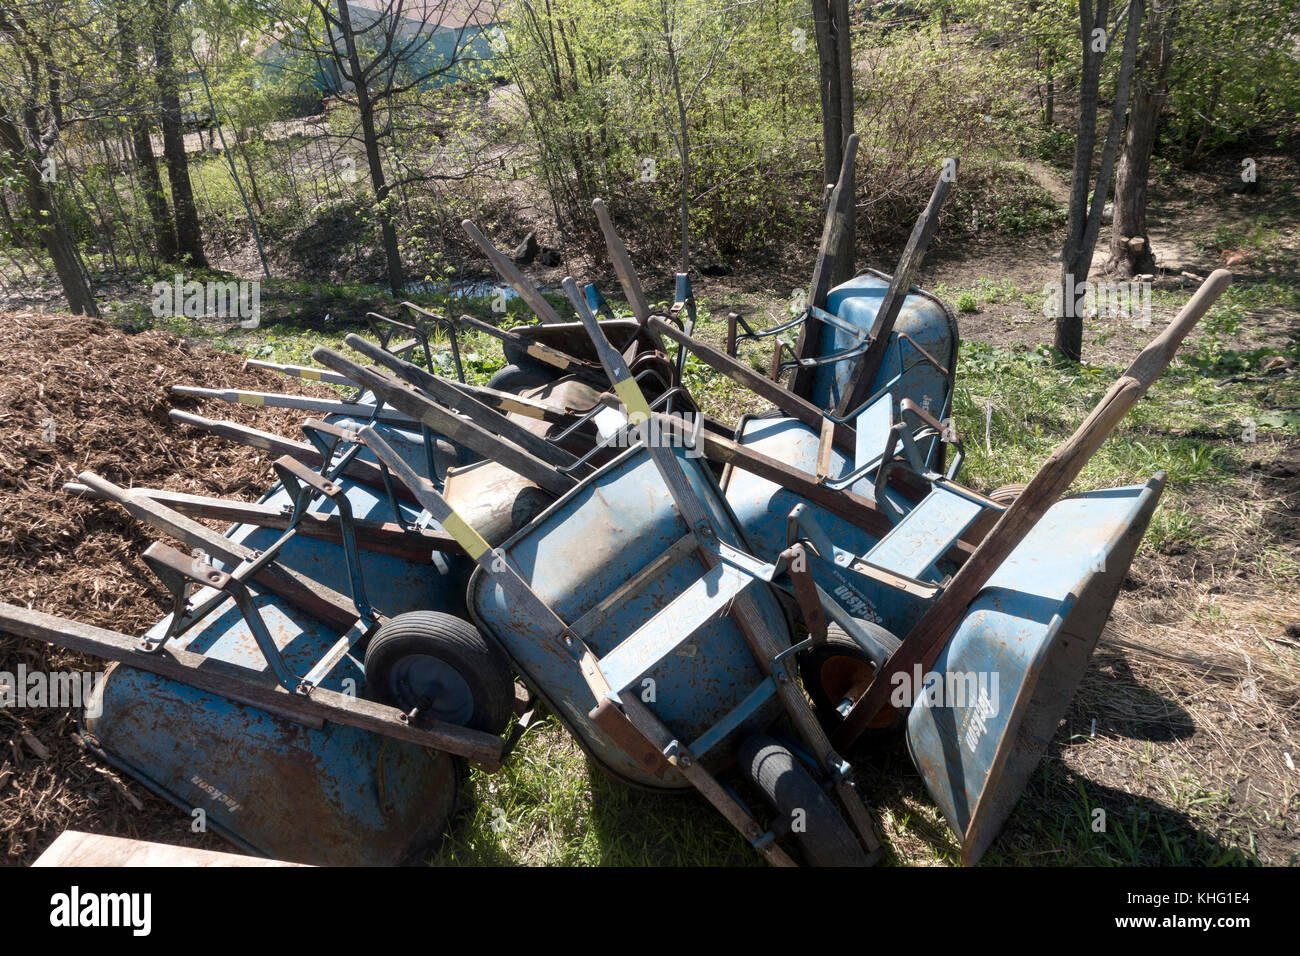 Large group of wheelbarrows used for landscaping a park alongside a bicycle trail. Minneapolis Minnesota MN USA - Stock Image